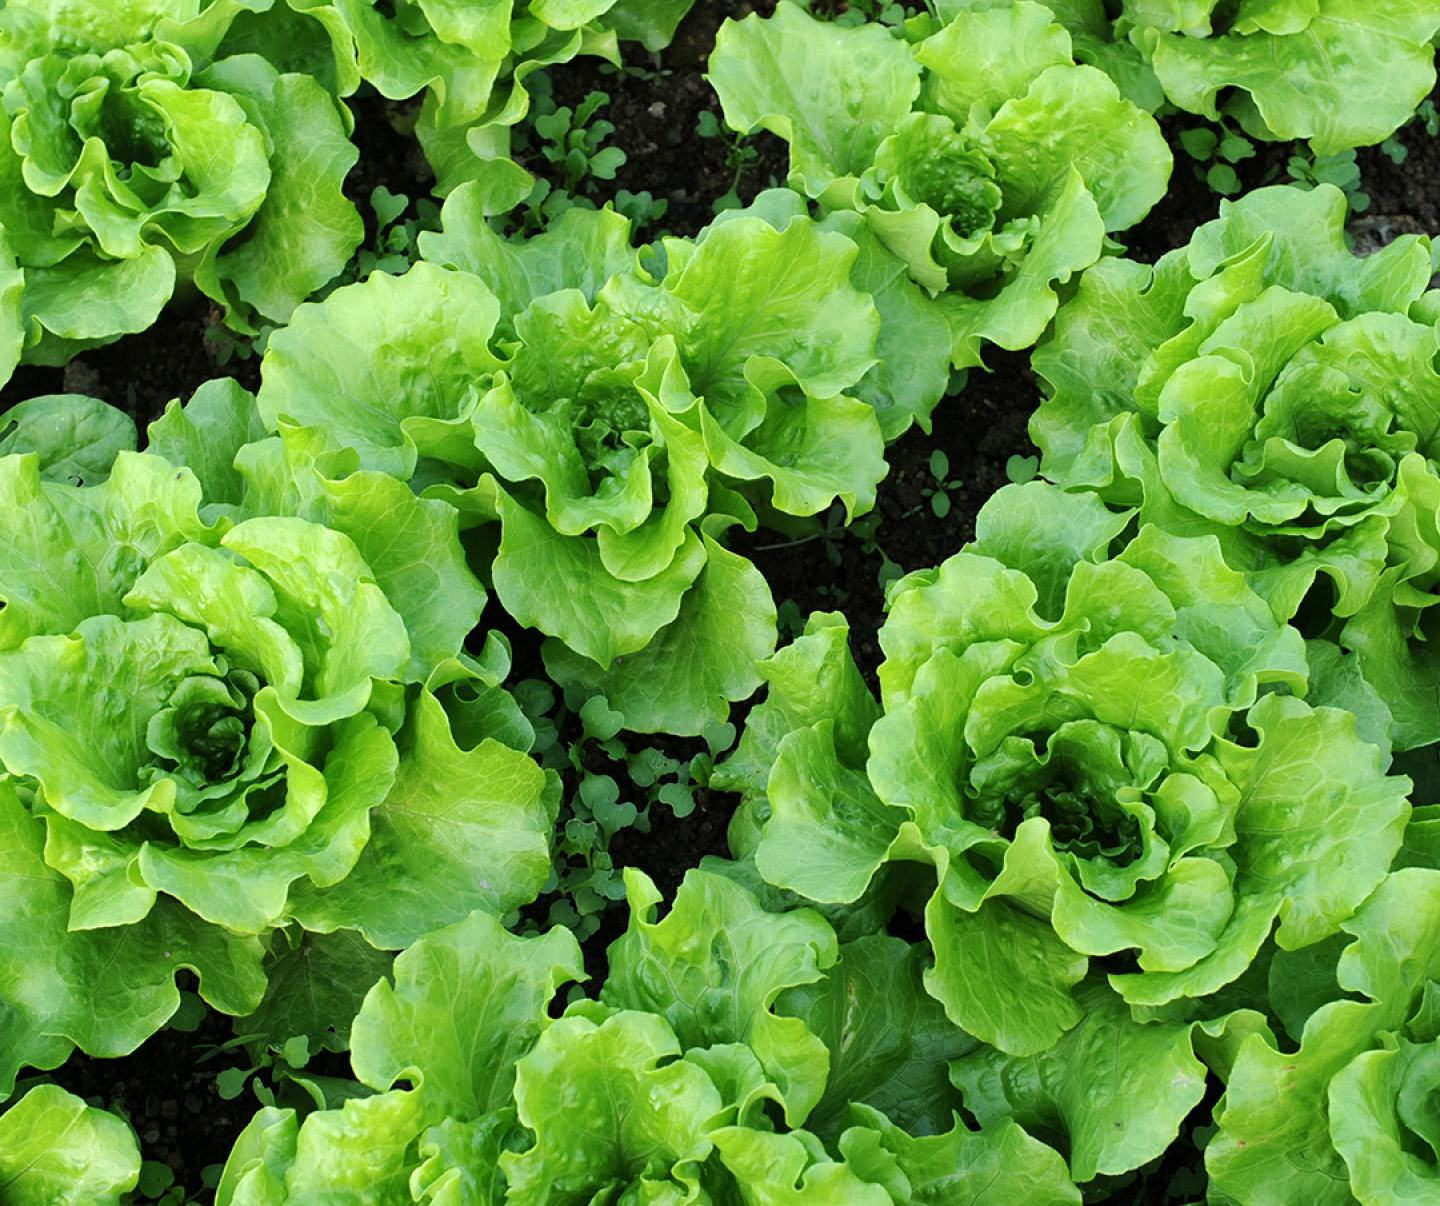 Close up of leafy lettuce